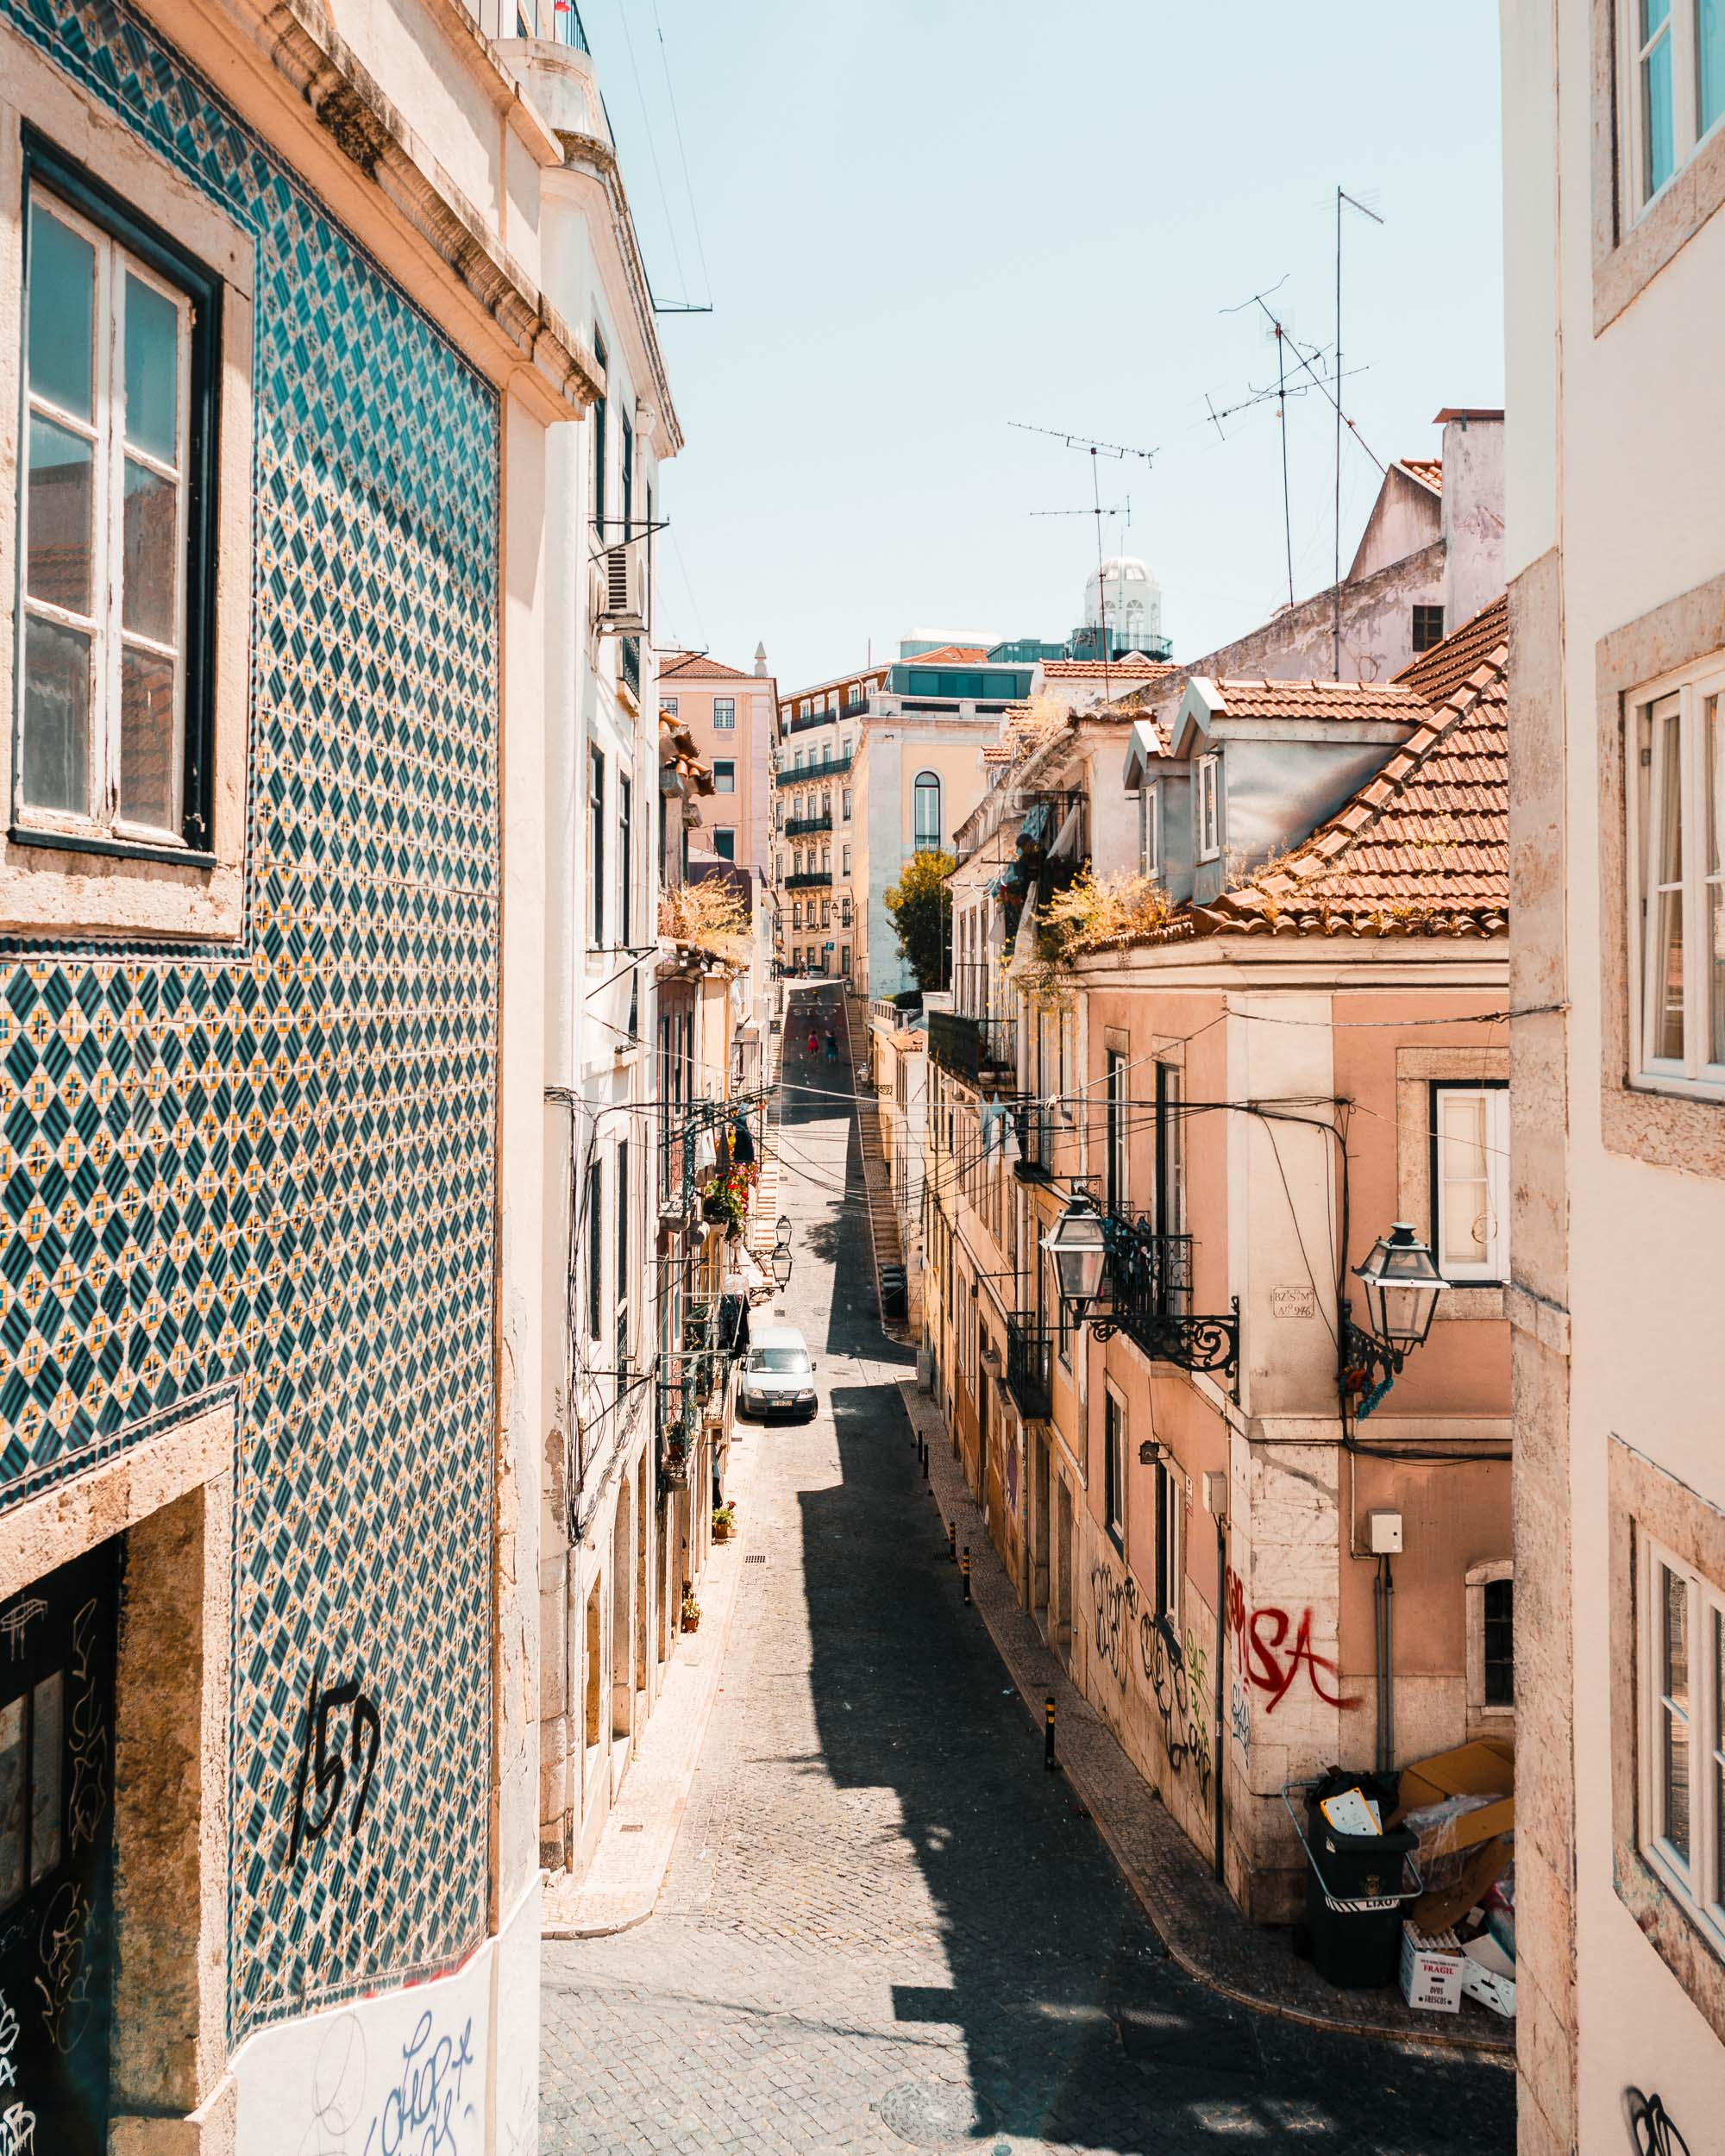 Colorful tiled buildings near Barrio Alto in Lisbon, Portugal | Lisbon Travel Guide via Find Us Lost